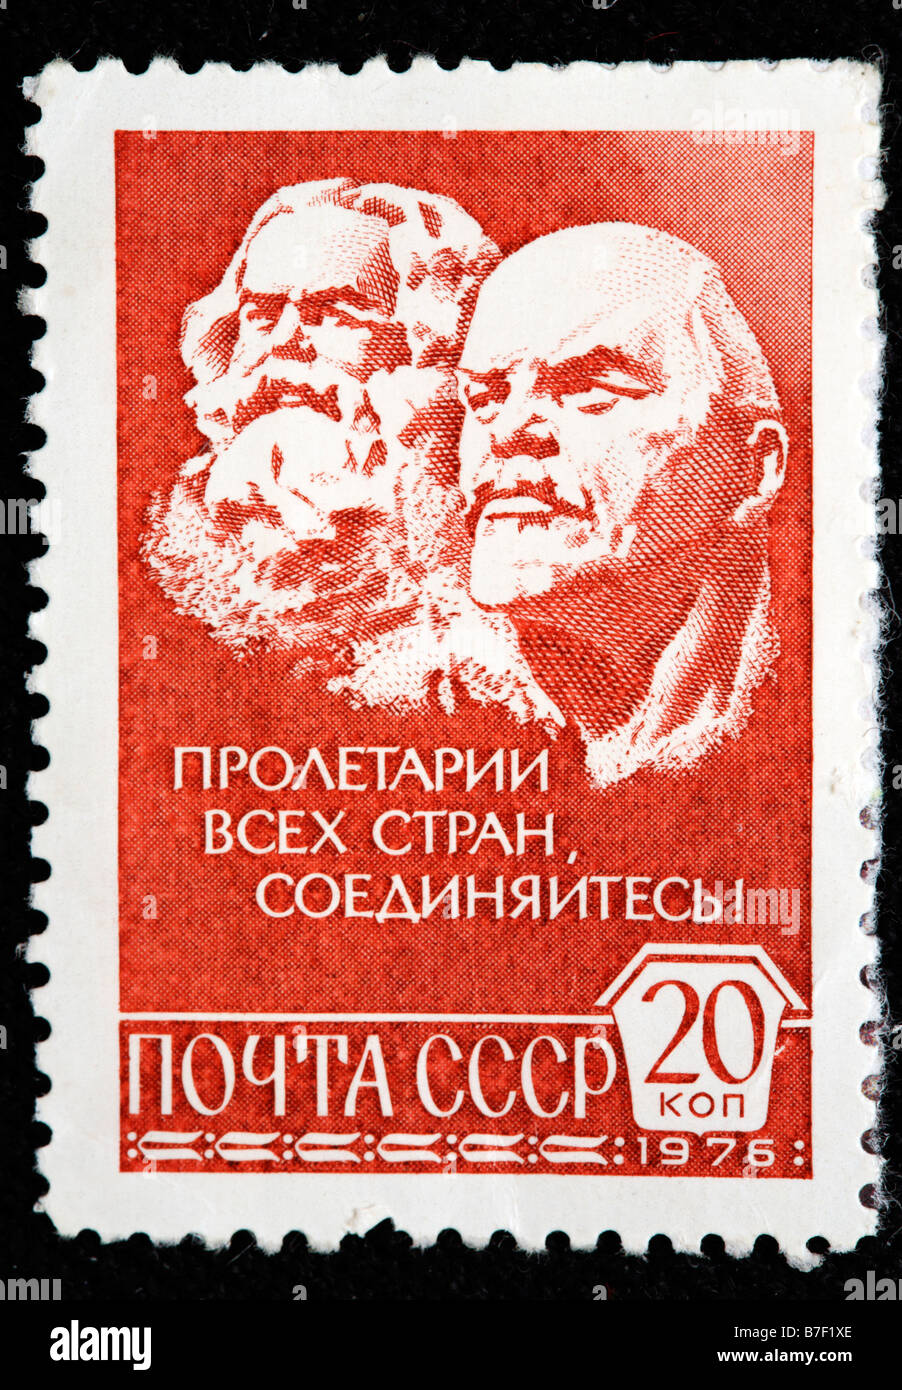 Karl Marx and Vladimir Lenin, postage stamp, USSR, 1976 - Stock Image